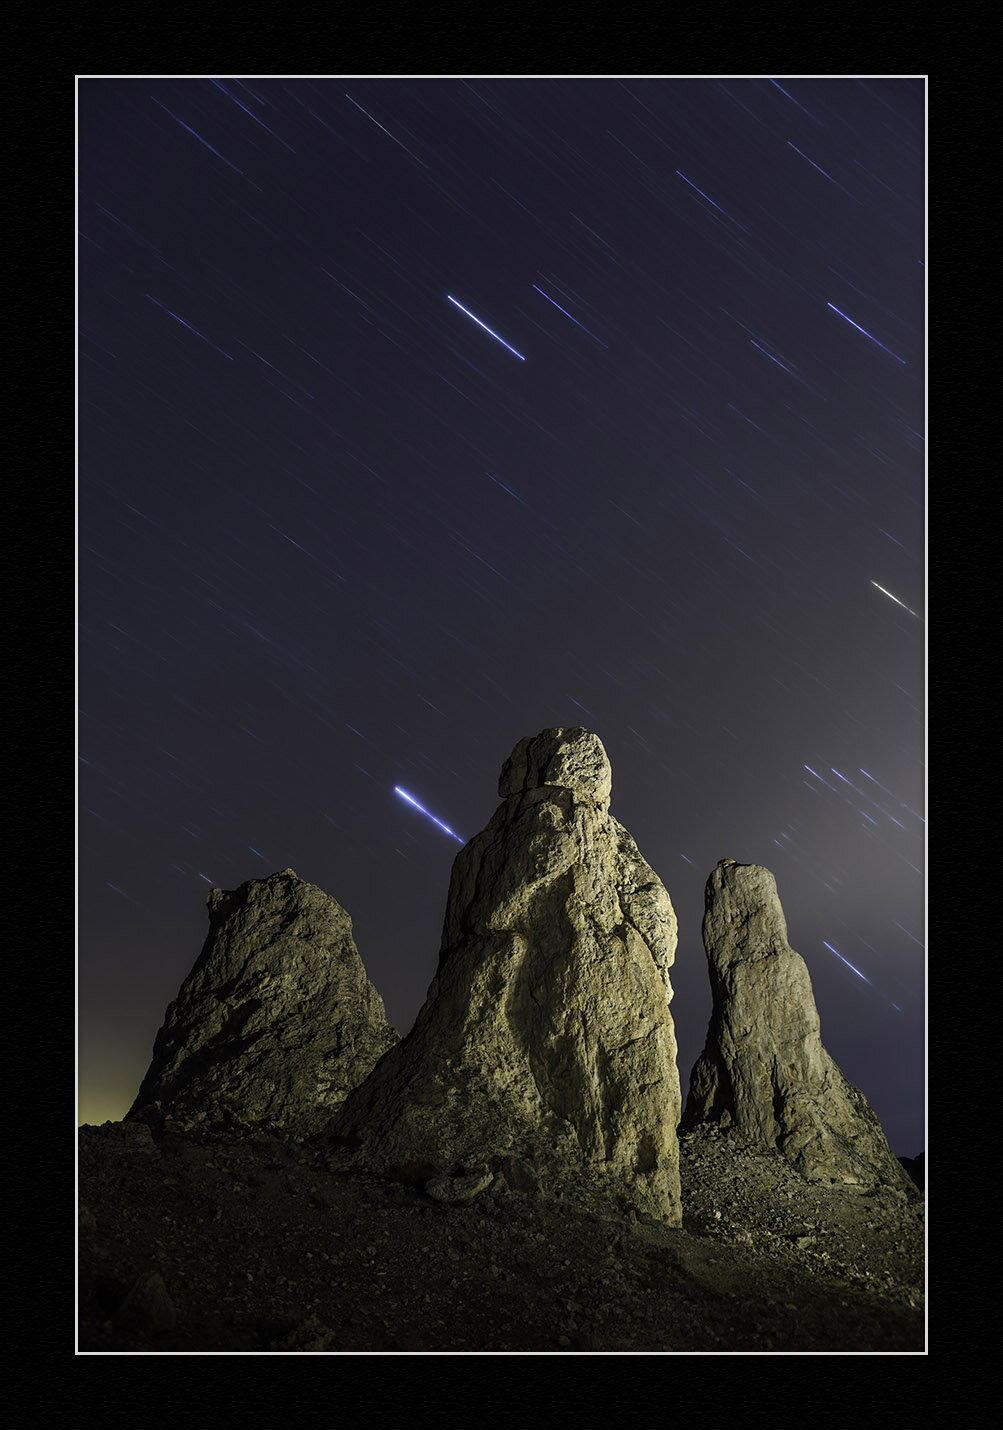 Star Trails and Tufa Spires,  Trona Pinnacles , California.  Nikon D5  with a  Nikon 24-70mm f/2.8  lens, light painted with a  Coast HP7R  flashlight with 1/2 CTO and -1/8 green gels. 20 minutes, f/2.8, ISO 100.